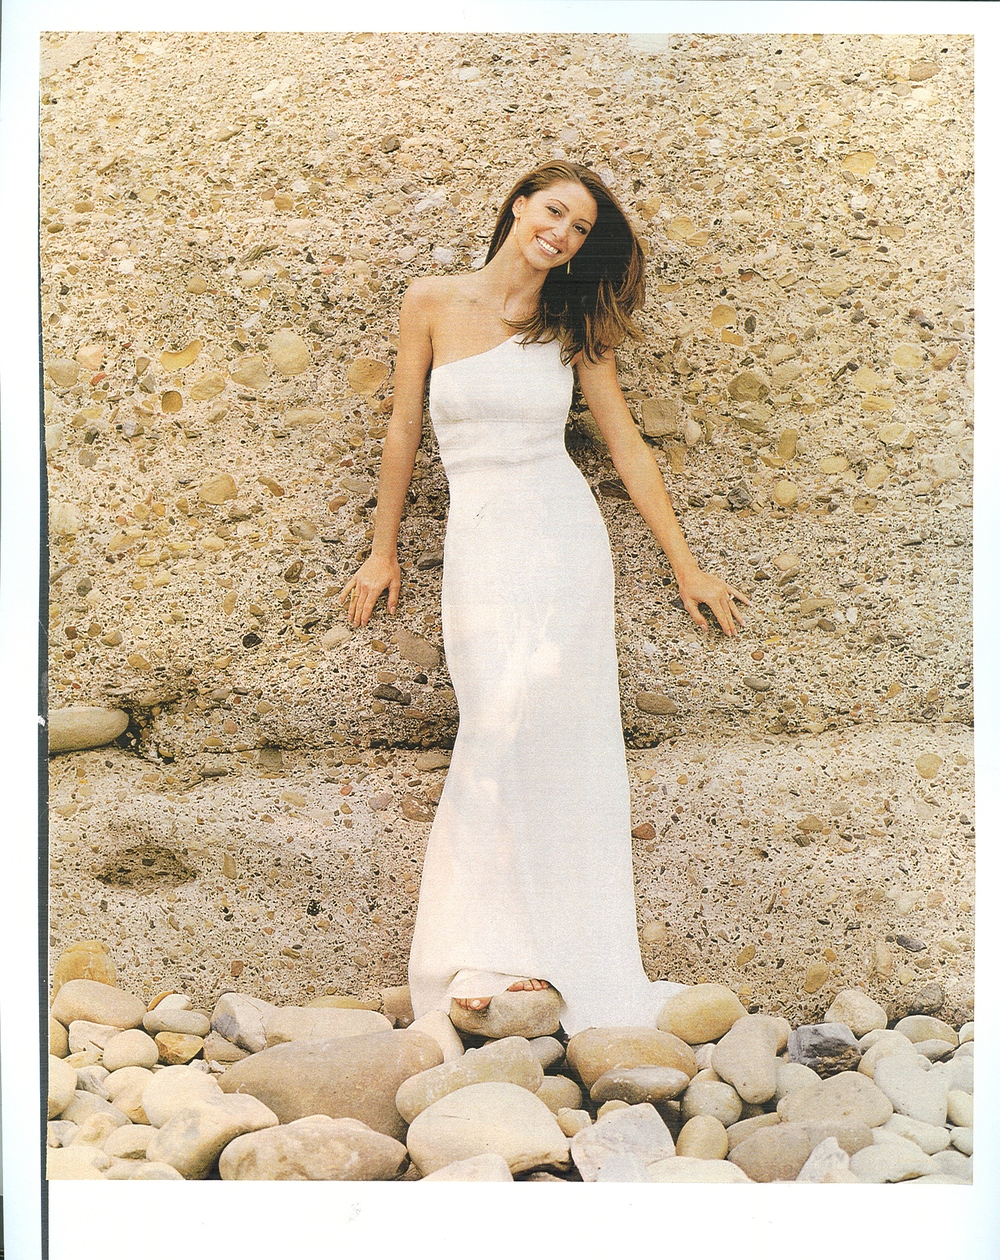 SE_InStyle Weddings_Summer 2002_5.jpg